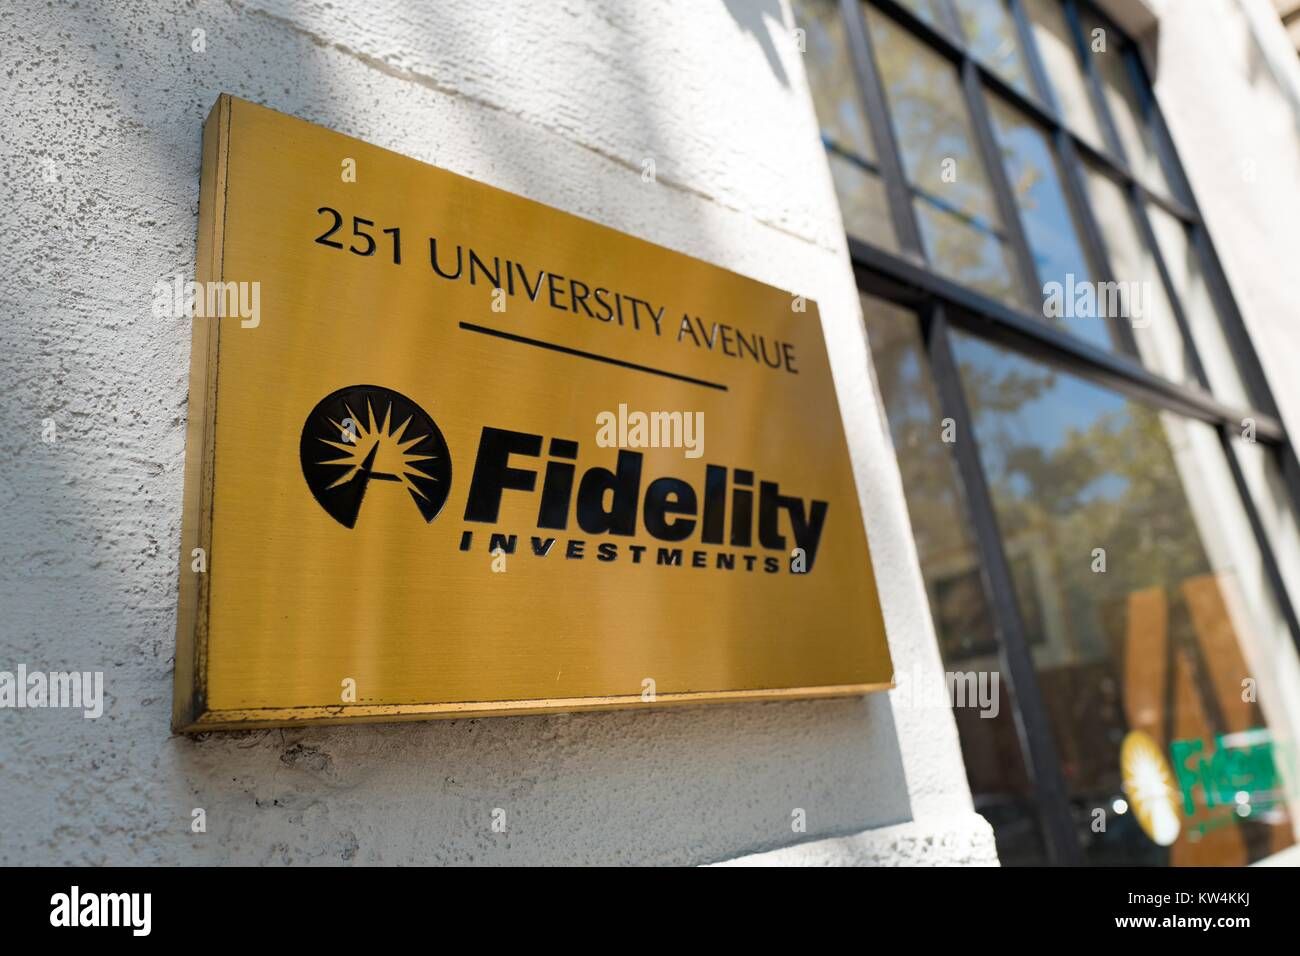 Fidelity stock photos fidelity stock images alamy signage with logo for fidelity investments on university avenue in the silicon valley town of biocorpaavc Image collections